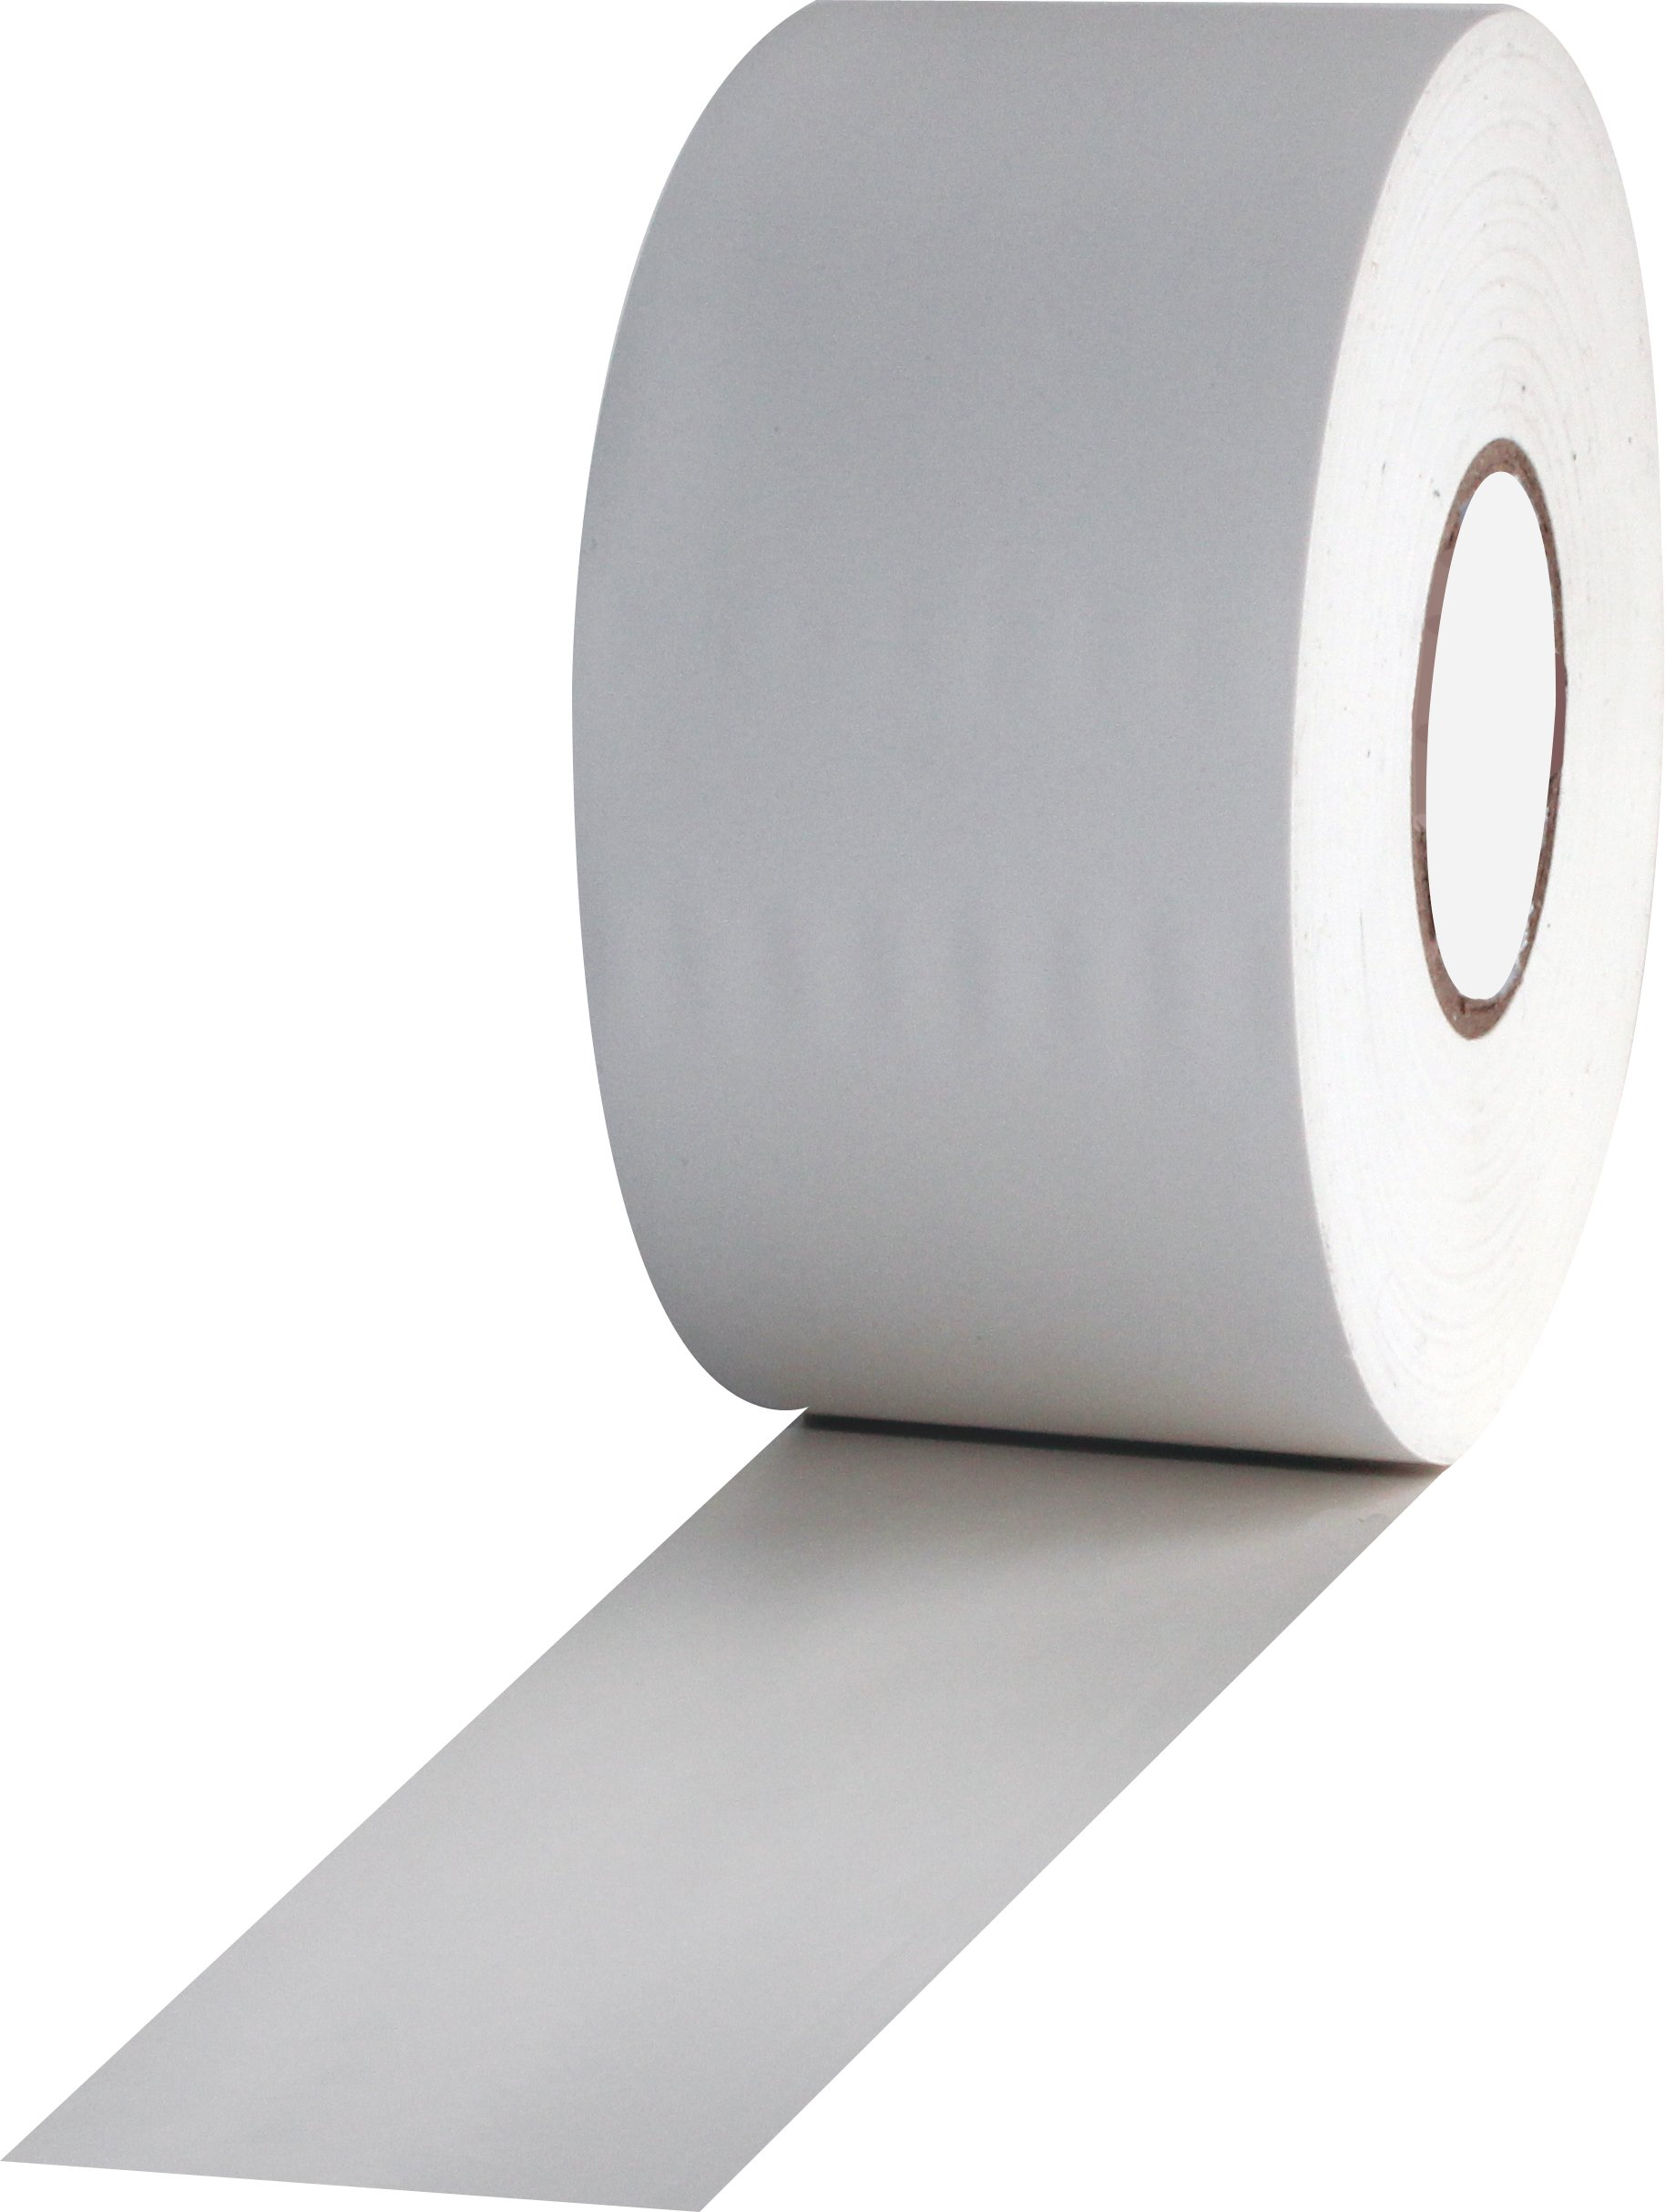 ProTapes Pro 603 Rubber Pipe Wrap Tape with PVC Backing, 10 mil Thick, 100' Length x 3'' Width, White (Pack of 1)